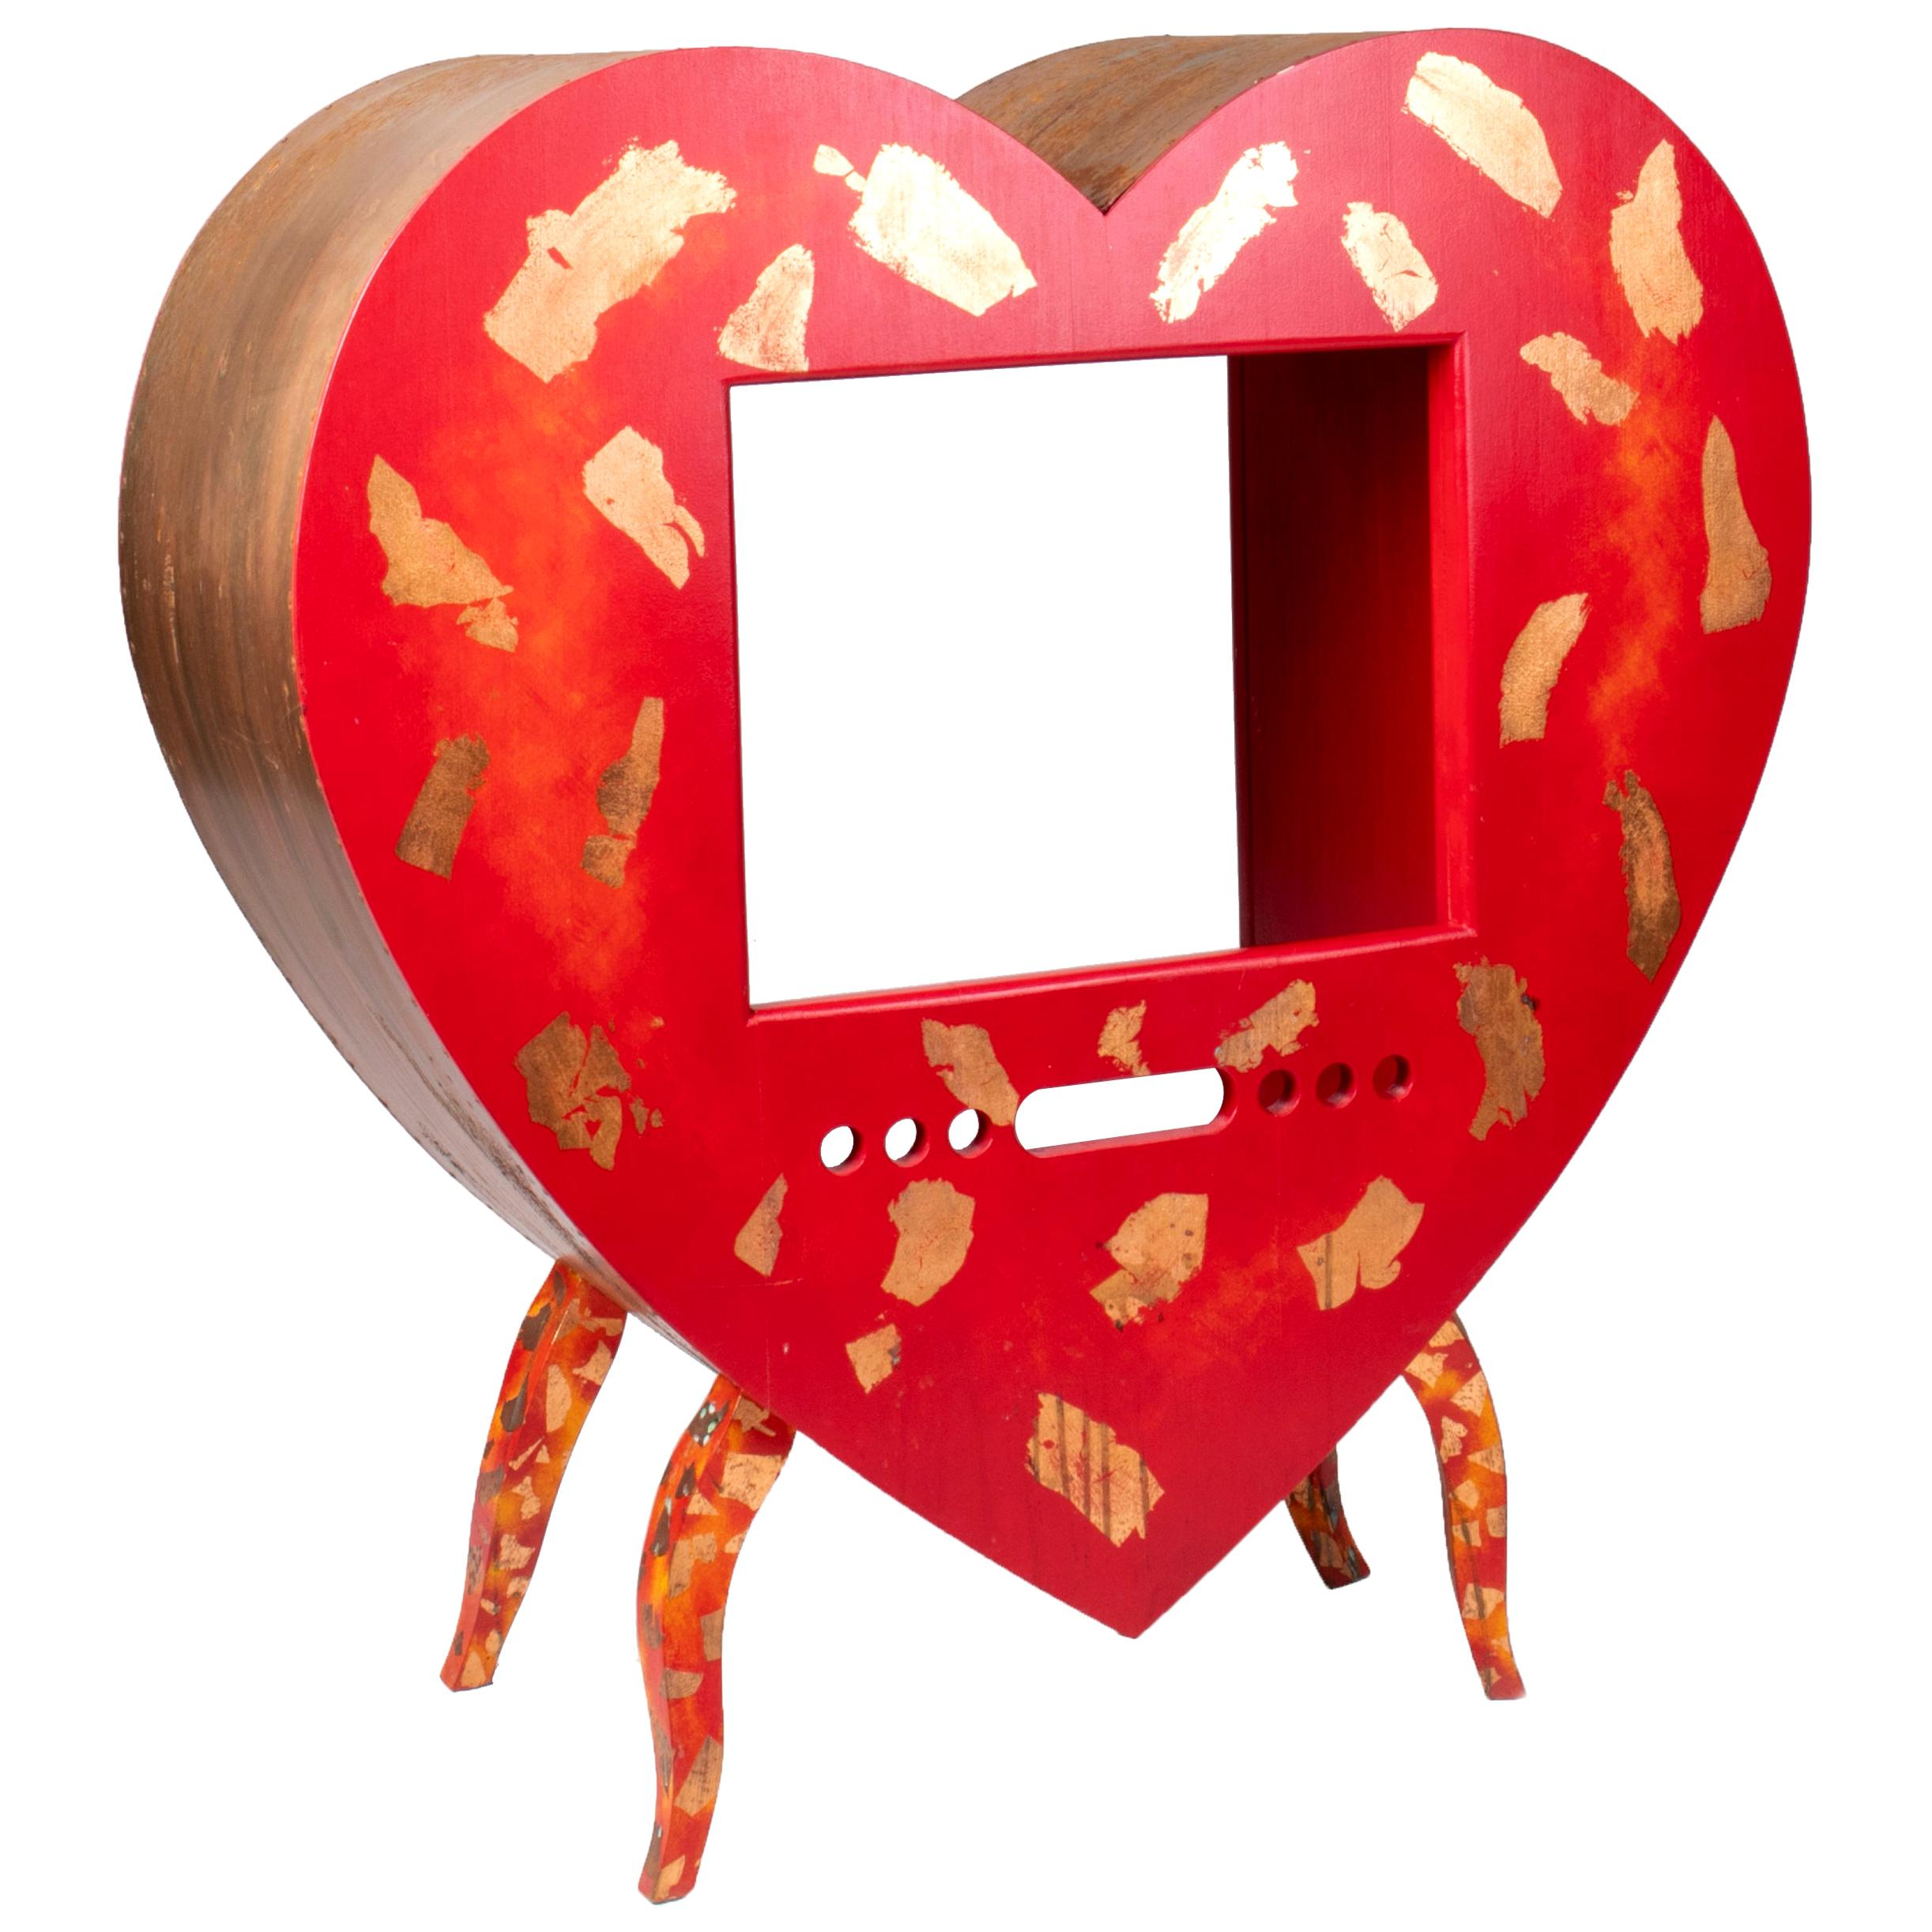 1980s German Abstract Design Heart Shaped Iron TV Cabinet